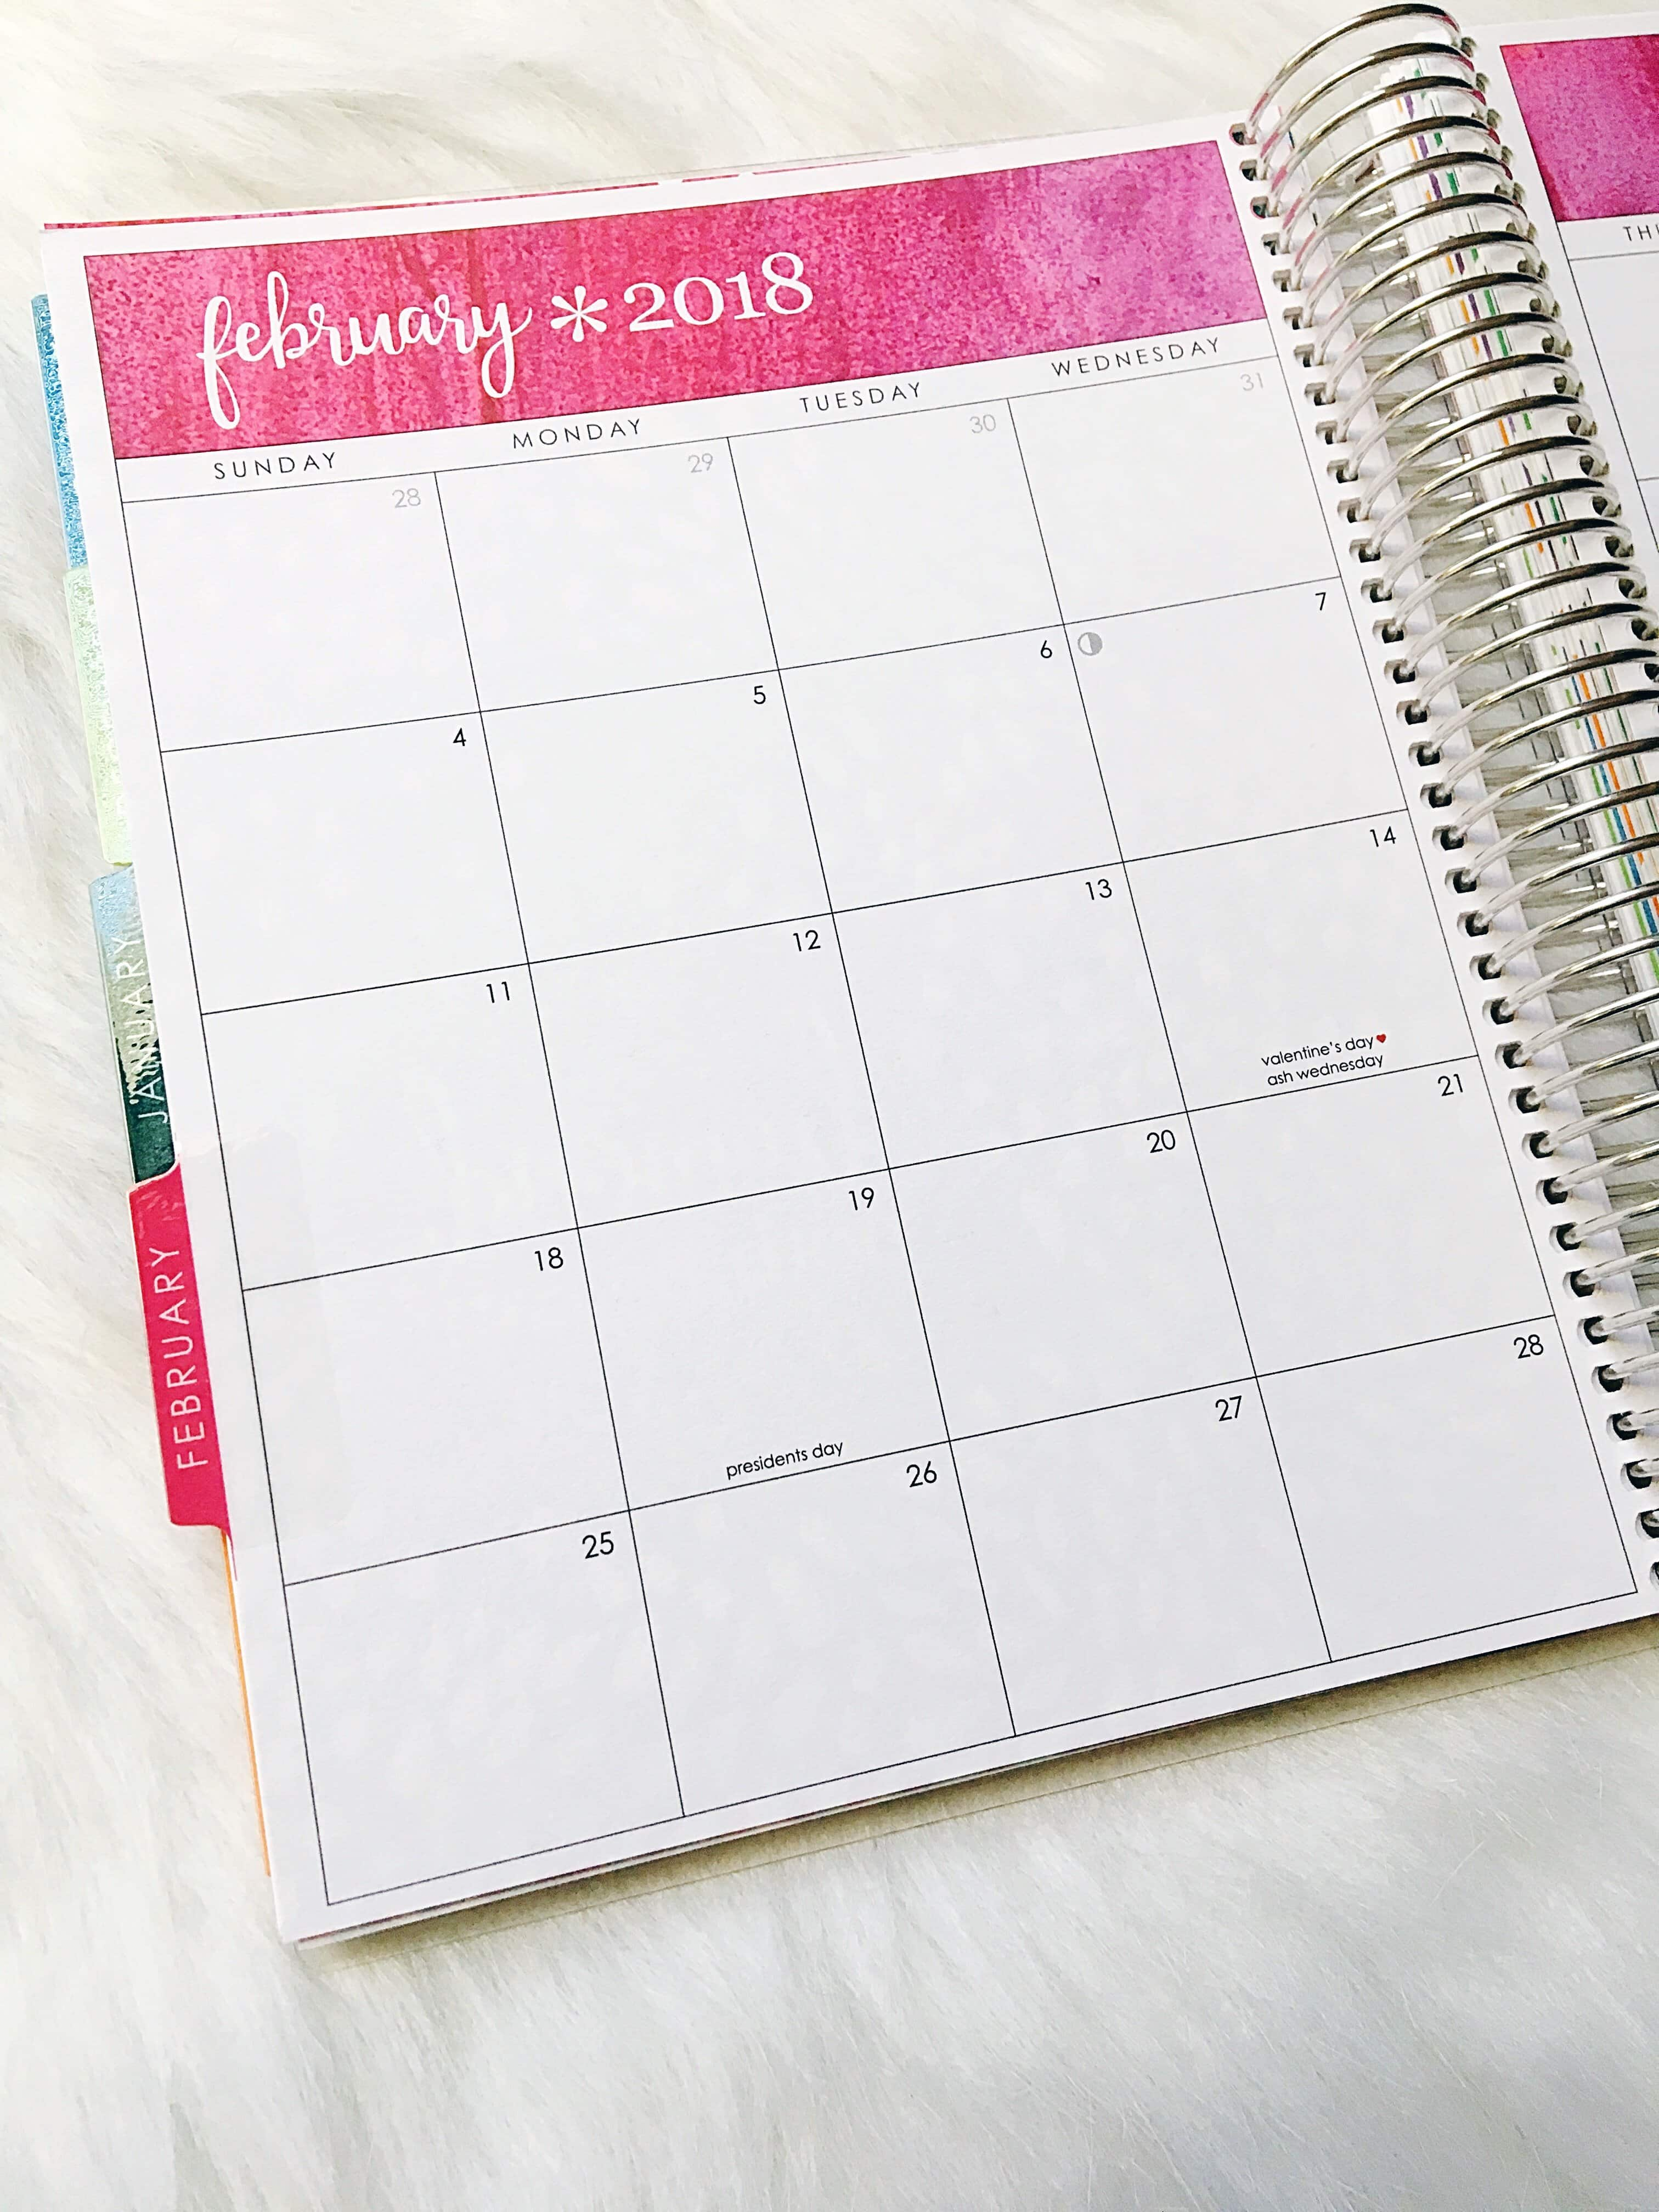 These 7 Tips + Tools For Organizing Your Life will help you minimize the clutter, reduce your stress, and get you back on track in getting stuff done this year